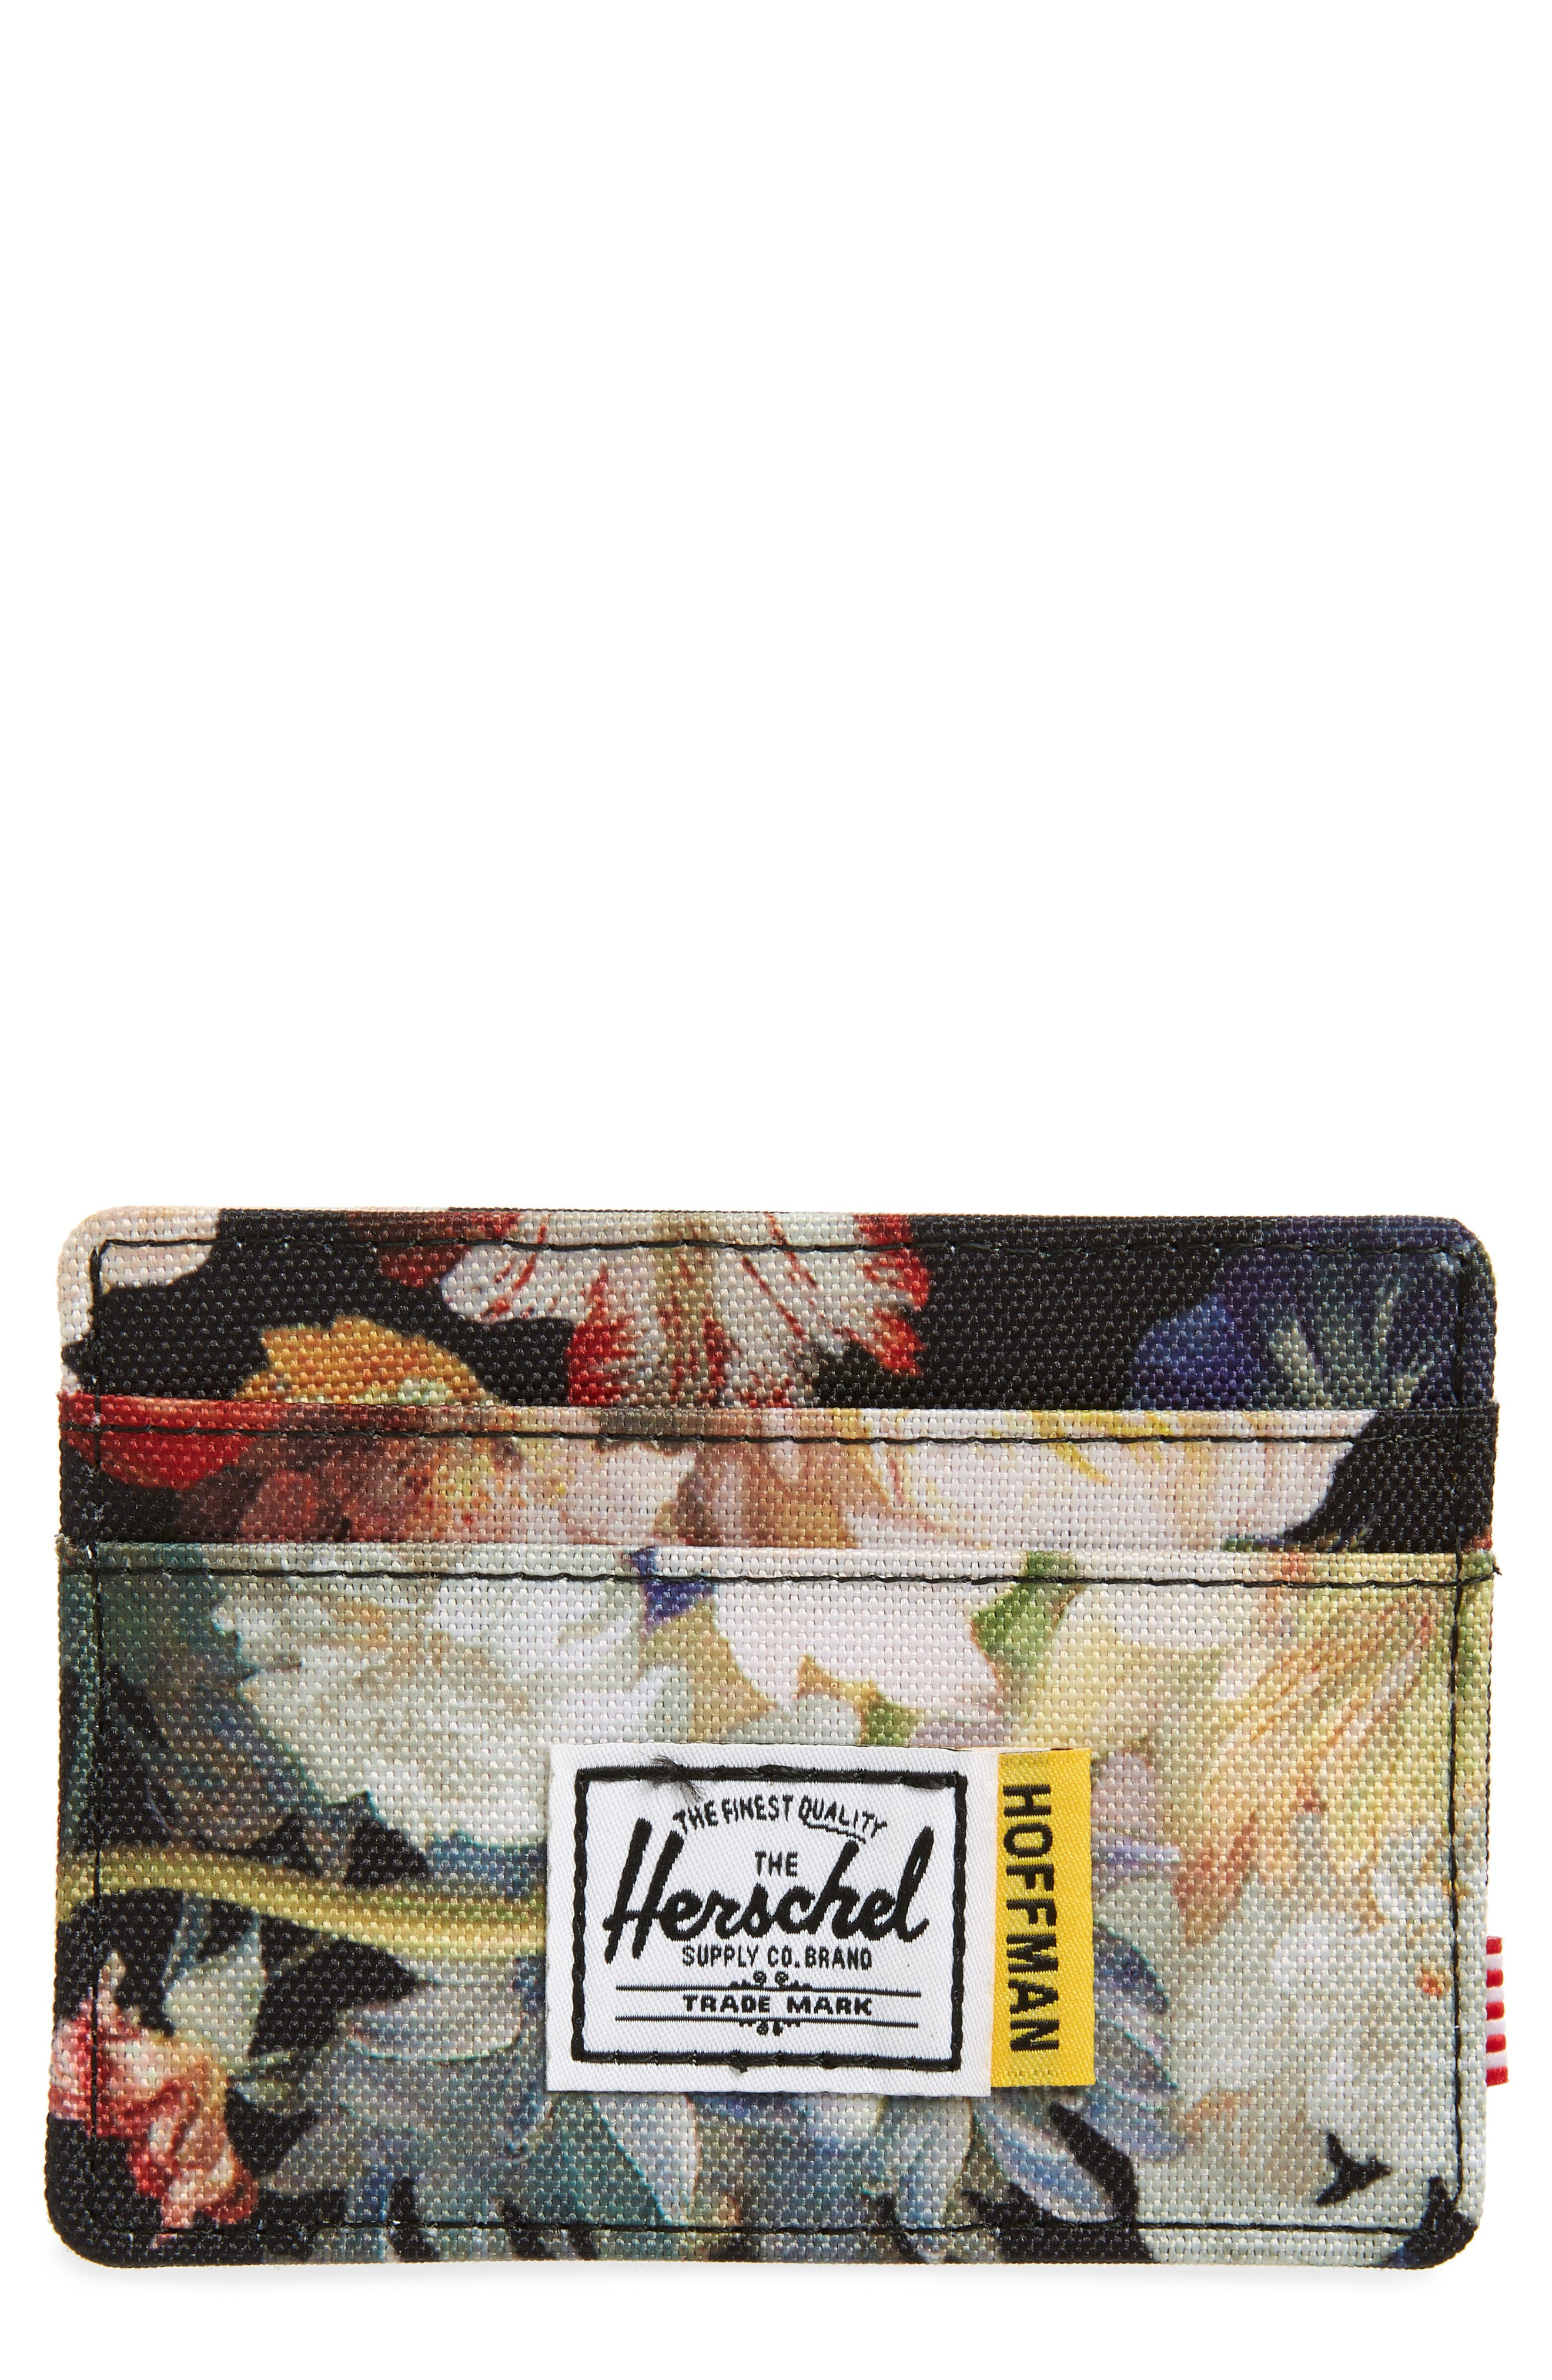 Hoffman Charlie Card Case,                         Main,                         color, FALL FLORAL